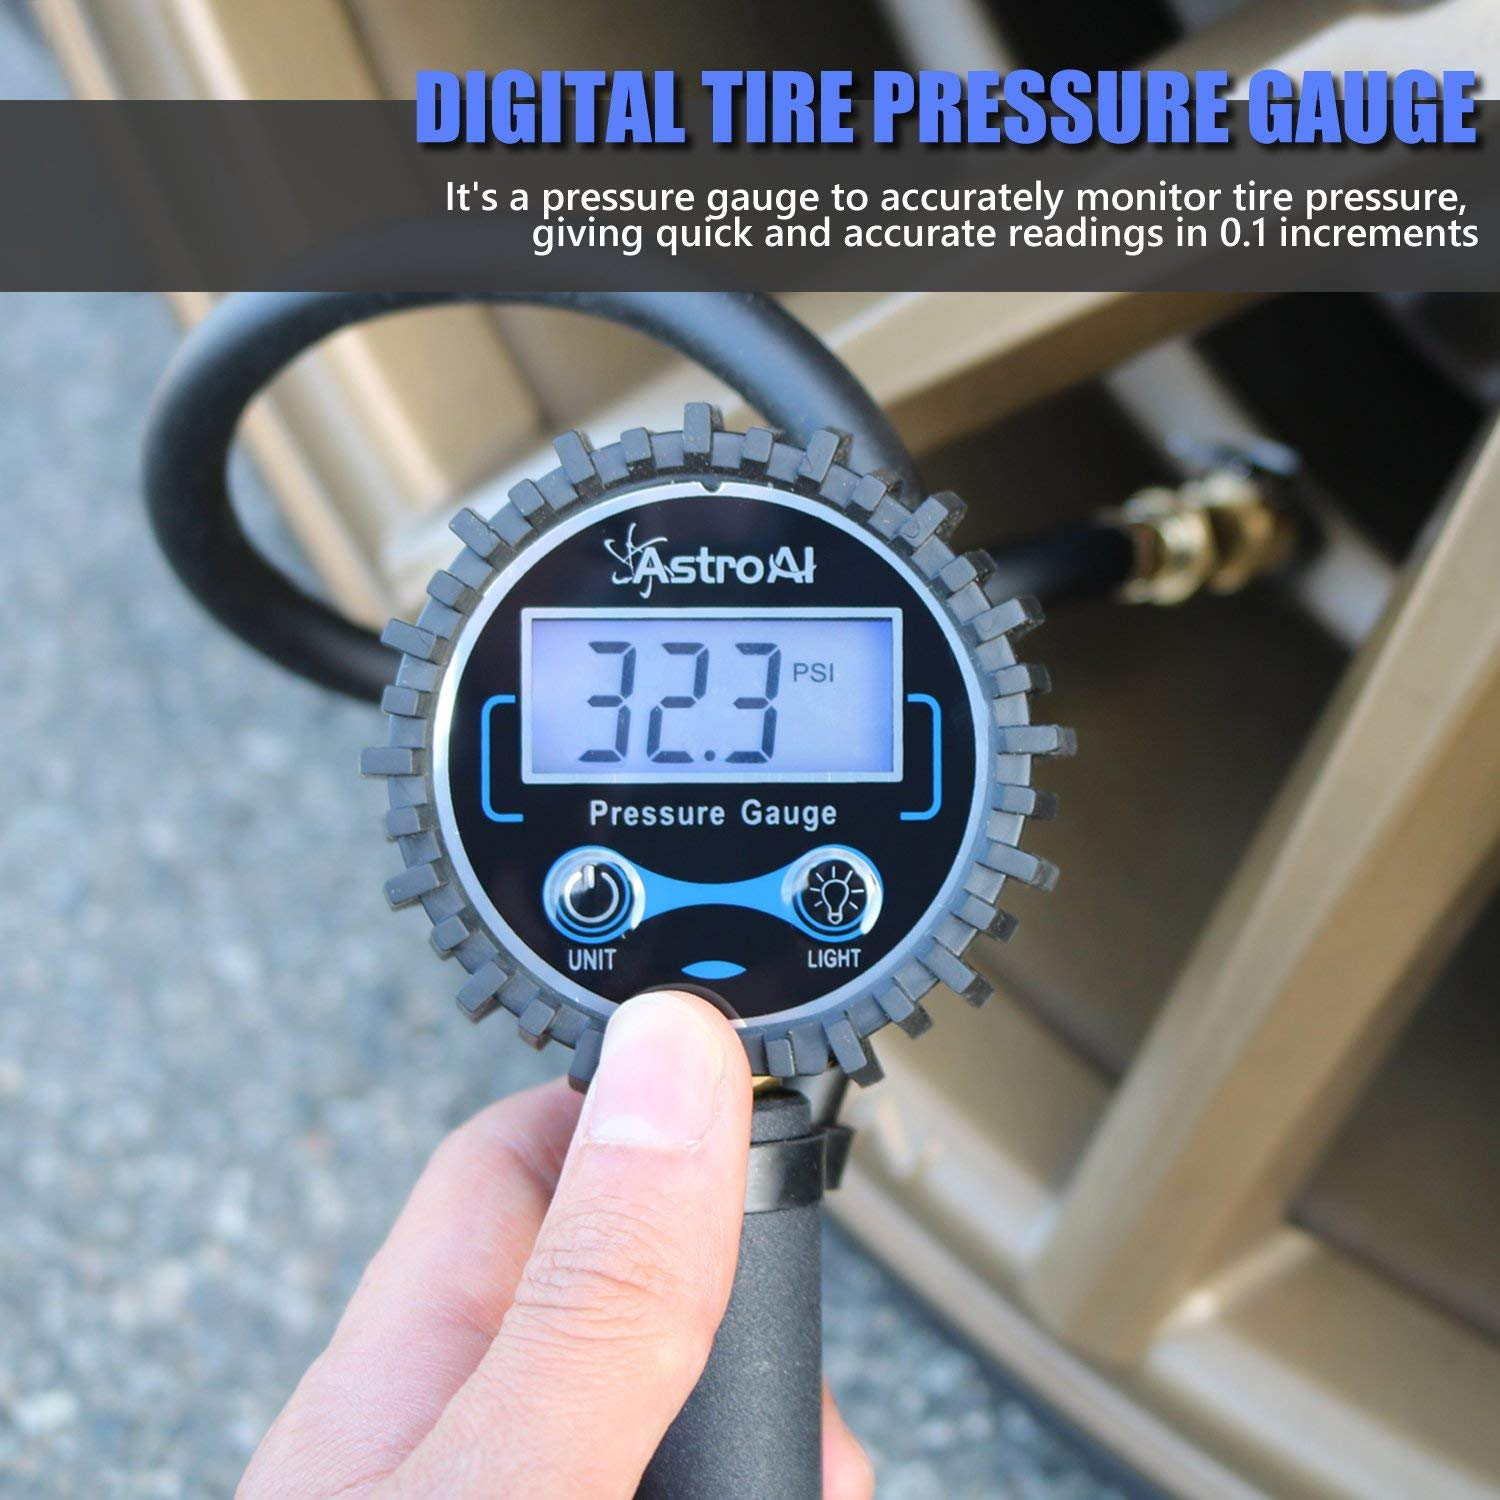 Renewed 250 PSI Air Chuck and Compressor Accessories Heavy Duty with Rubber Hose and Quick Connect Coupler for 0.1 Display Resolution AstroAI Digital Tire Inflator with Pressure Gauge